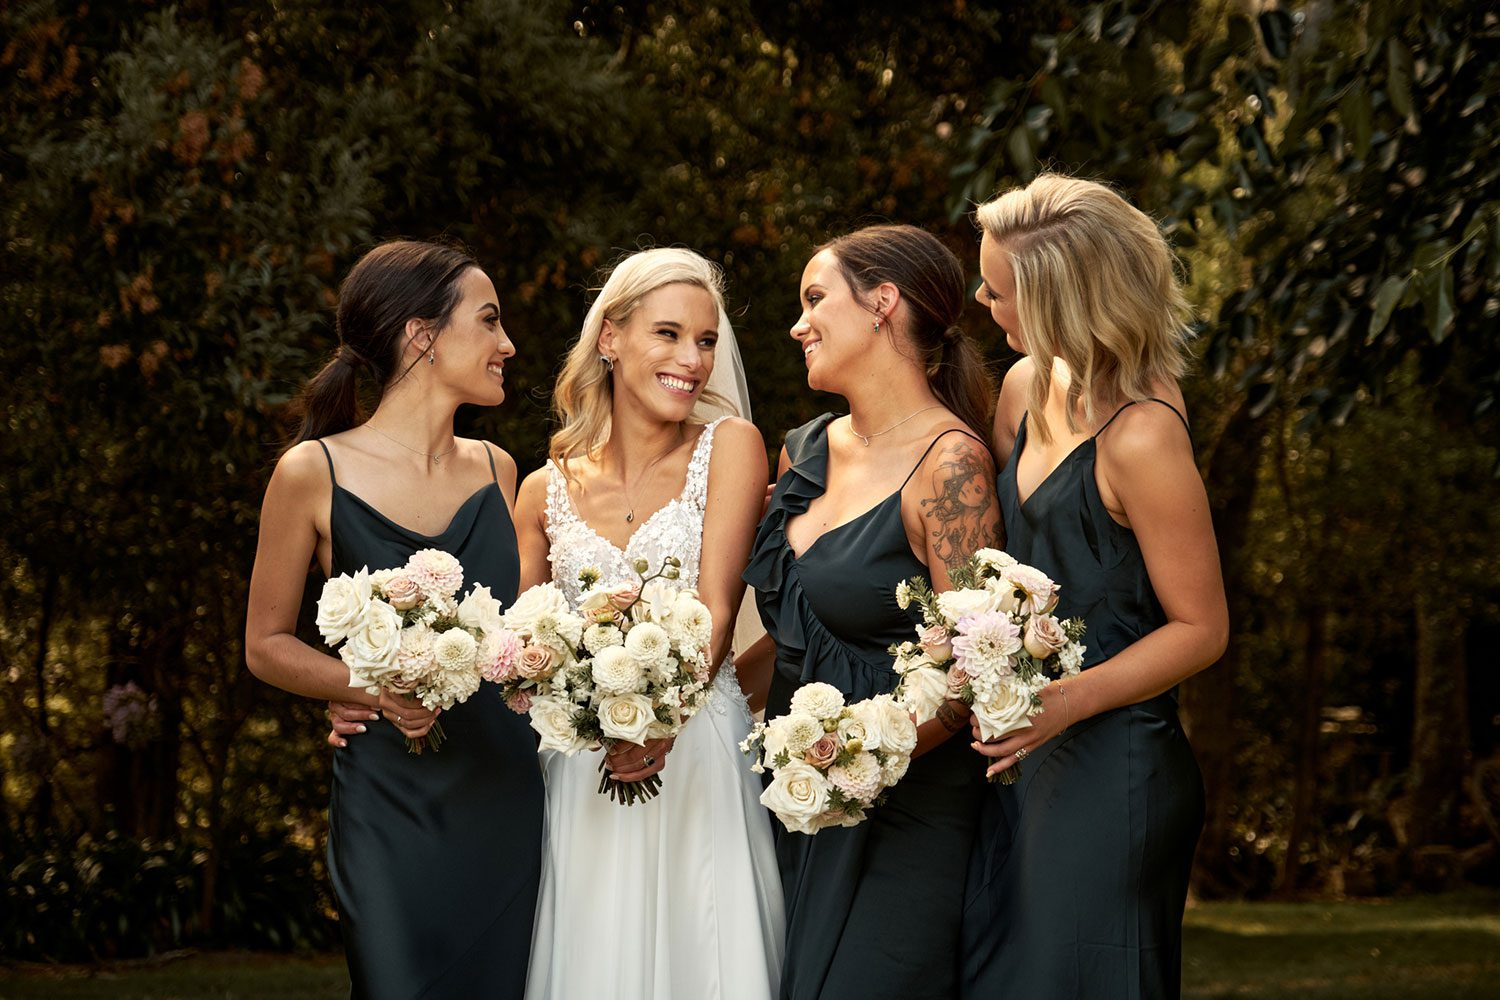 Bride wearing bespoke gown made of silk chiffon with delicate flower lace bodice by Vinka bridal designer Auckland - with bridesmaids and bouquets looking at each other